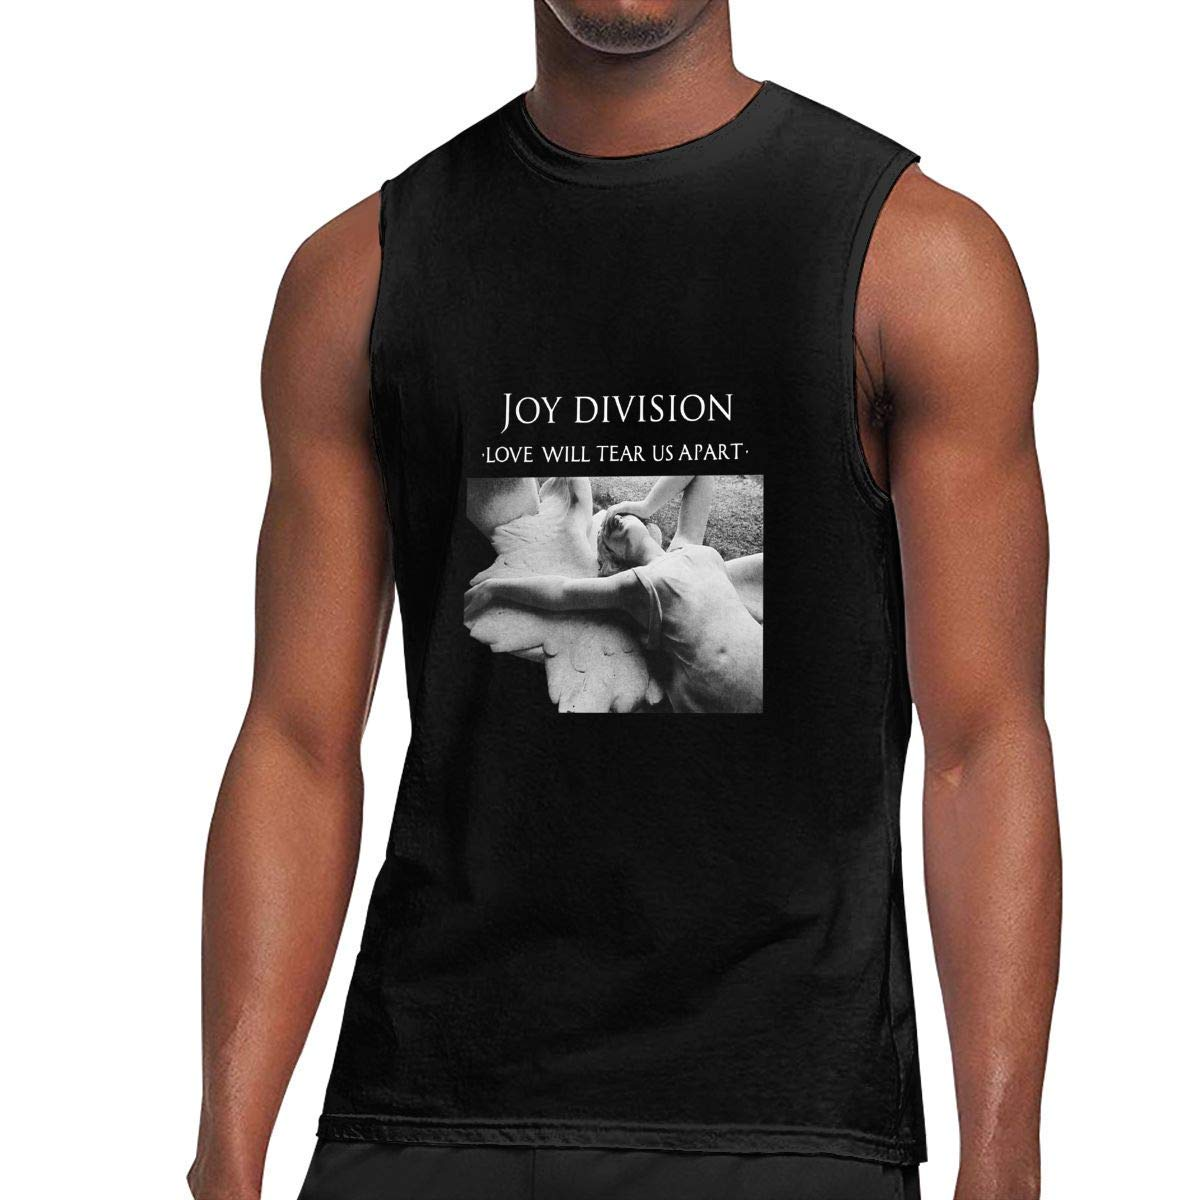 S Sleeveless T Shirts Joy Division Love Will Tear Us Apart Workout Tank Tops Gym Bodybuilding Tshirts Black